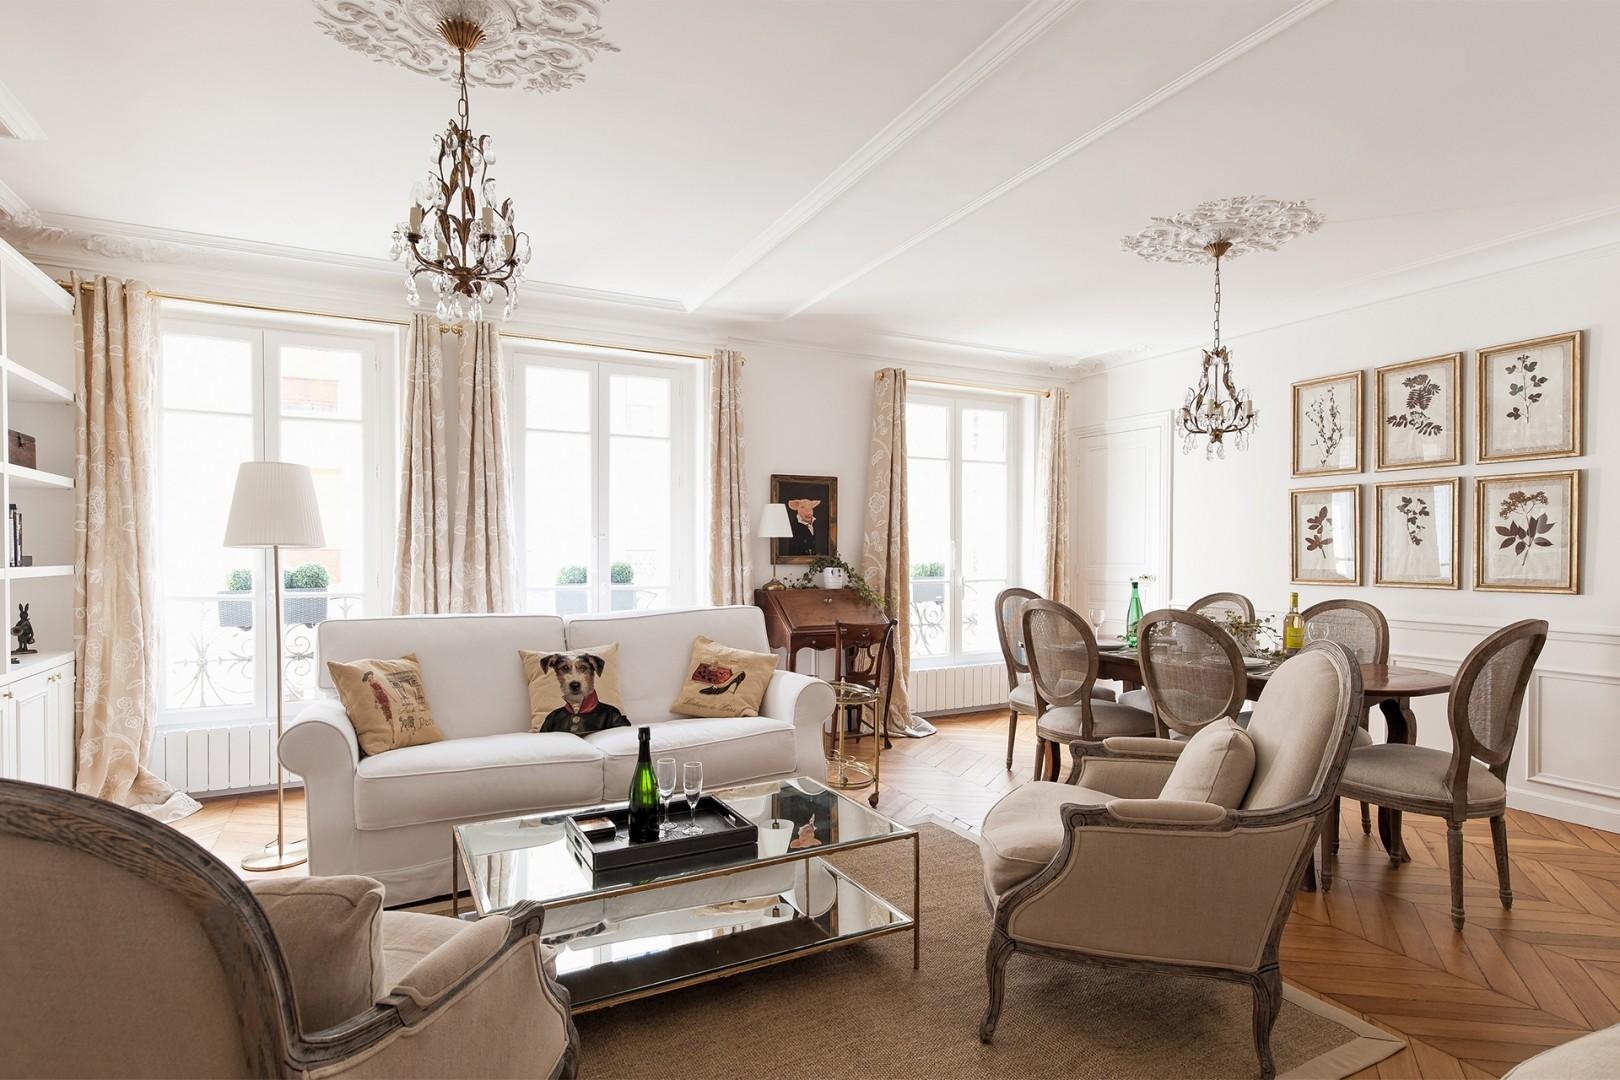 The living room and dining room merge into one gorgeous space.